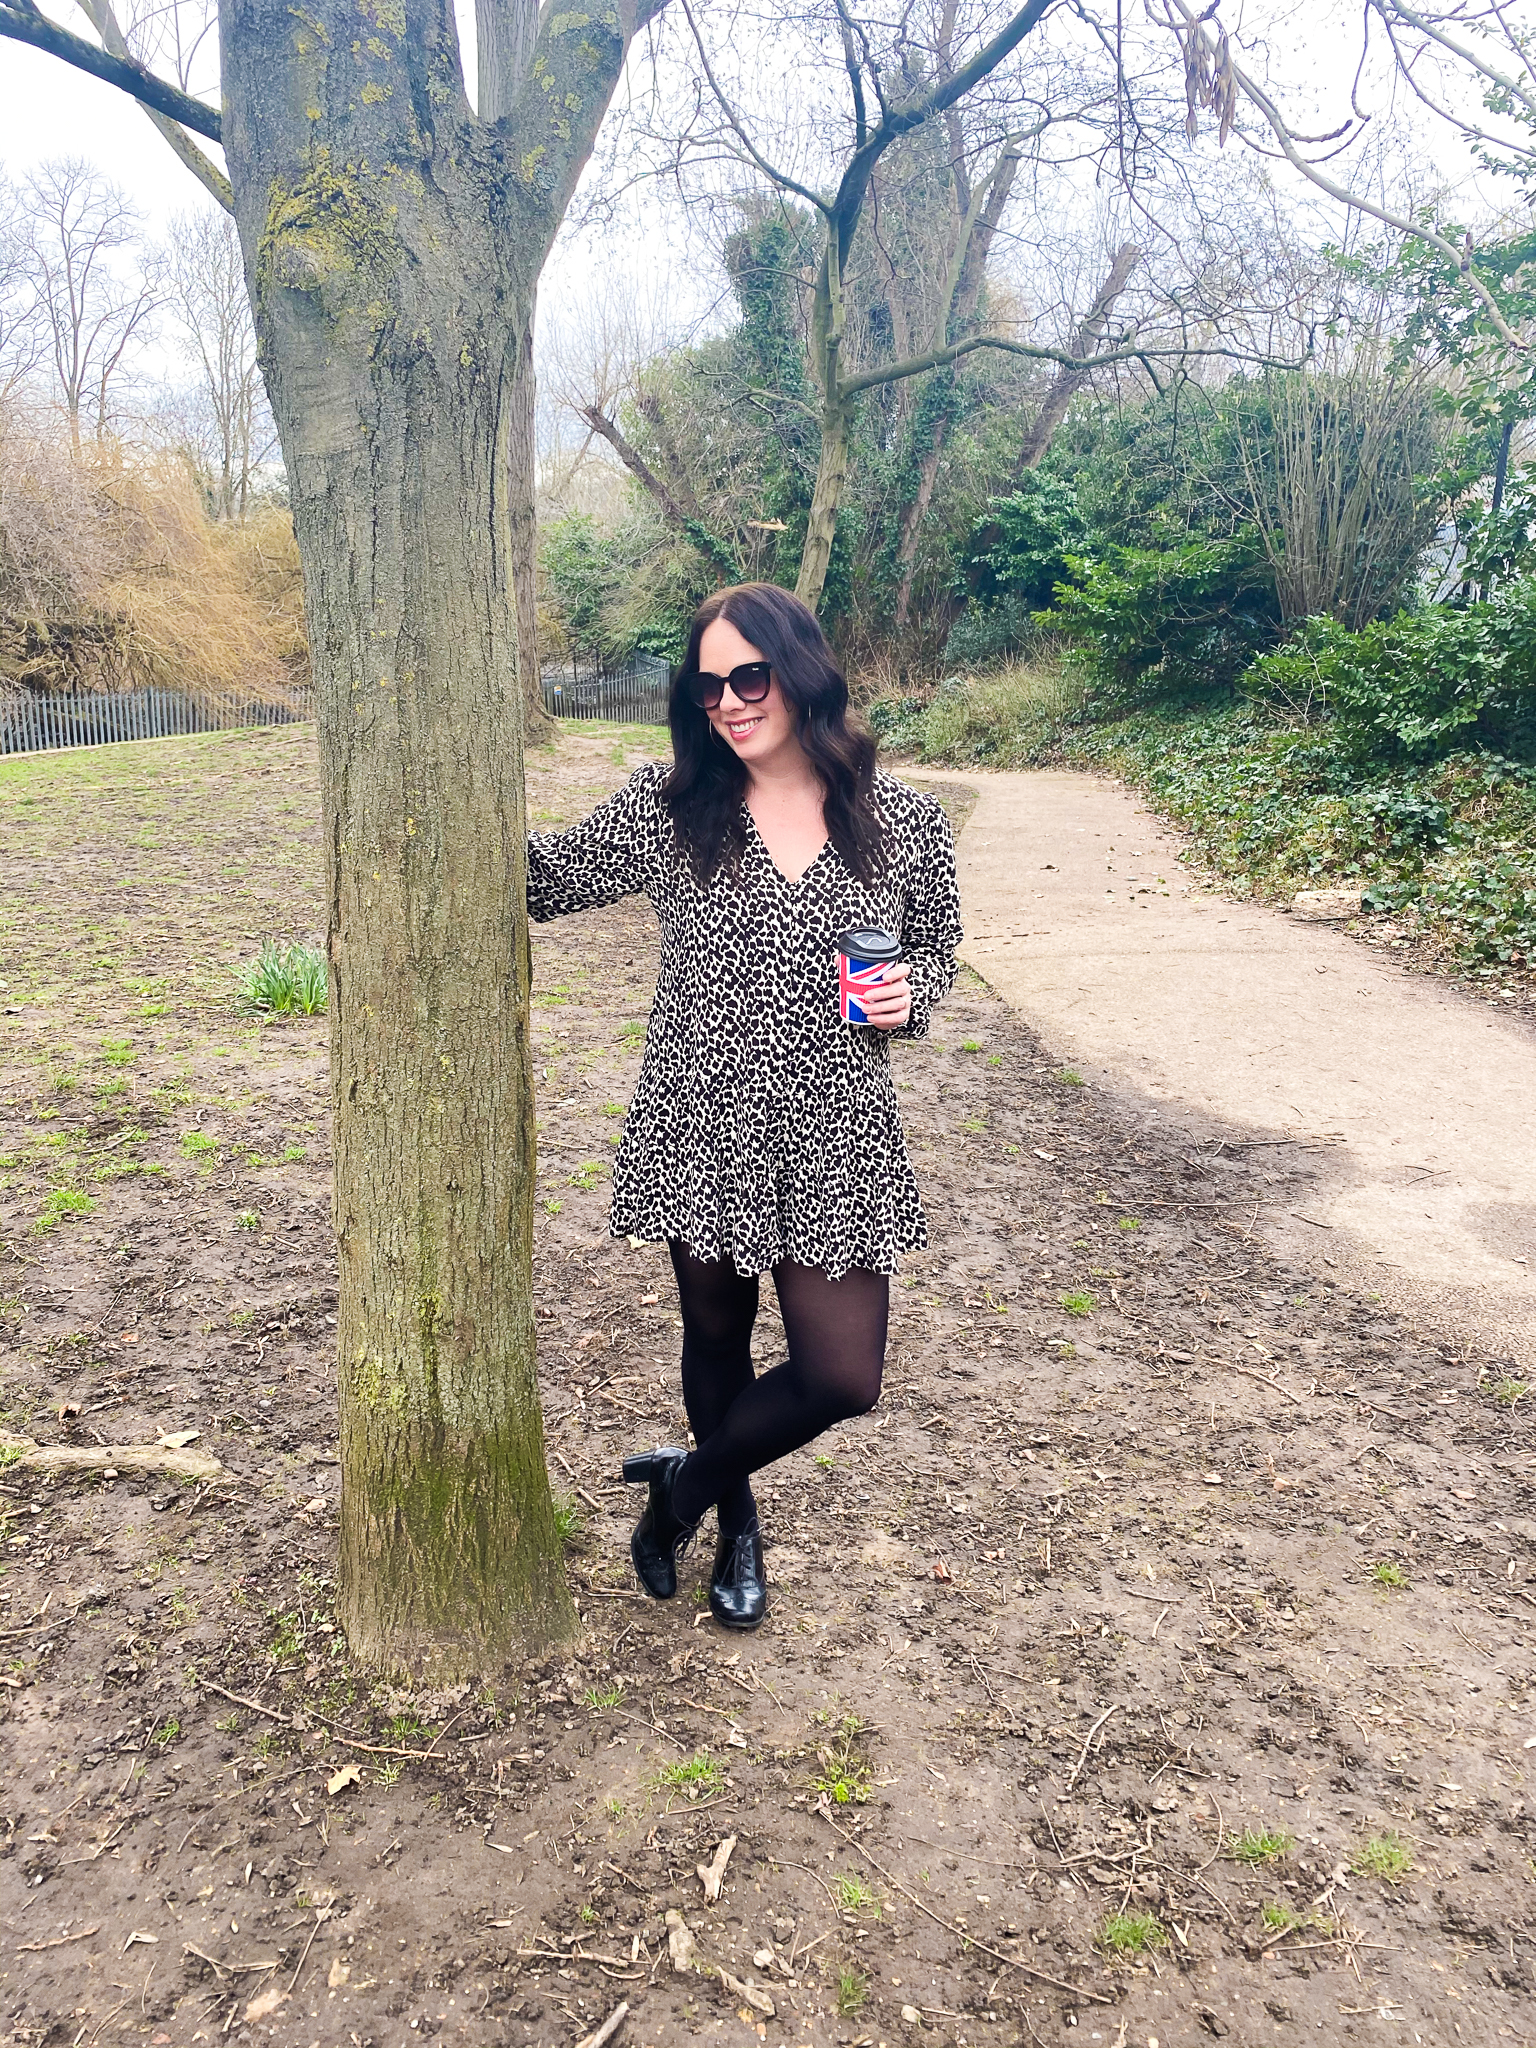 Leopard Print Playsuit with black tights